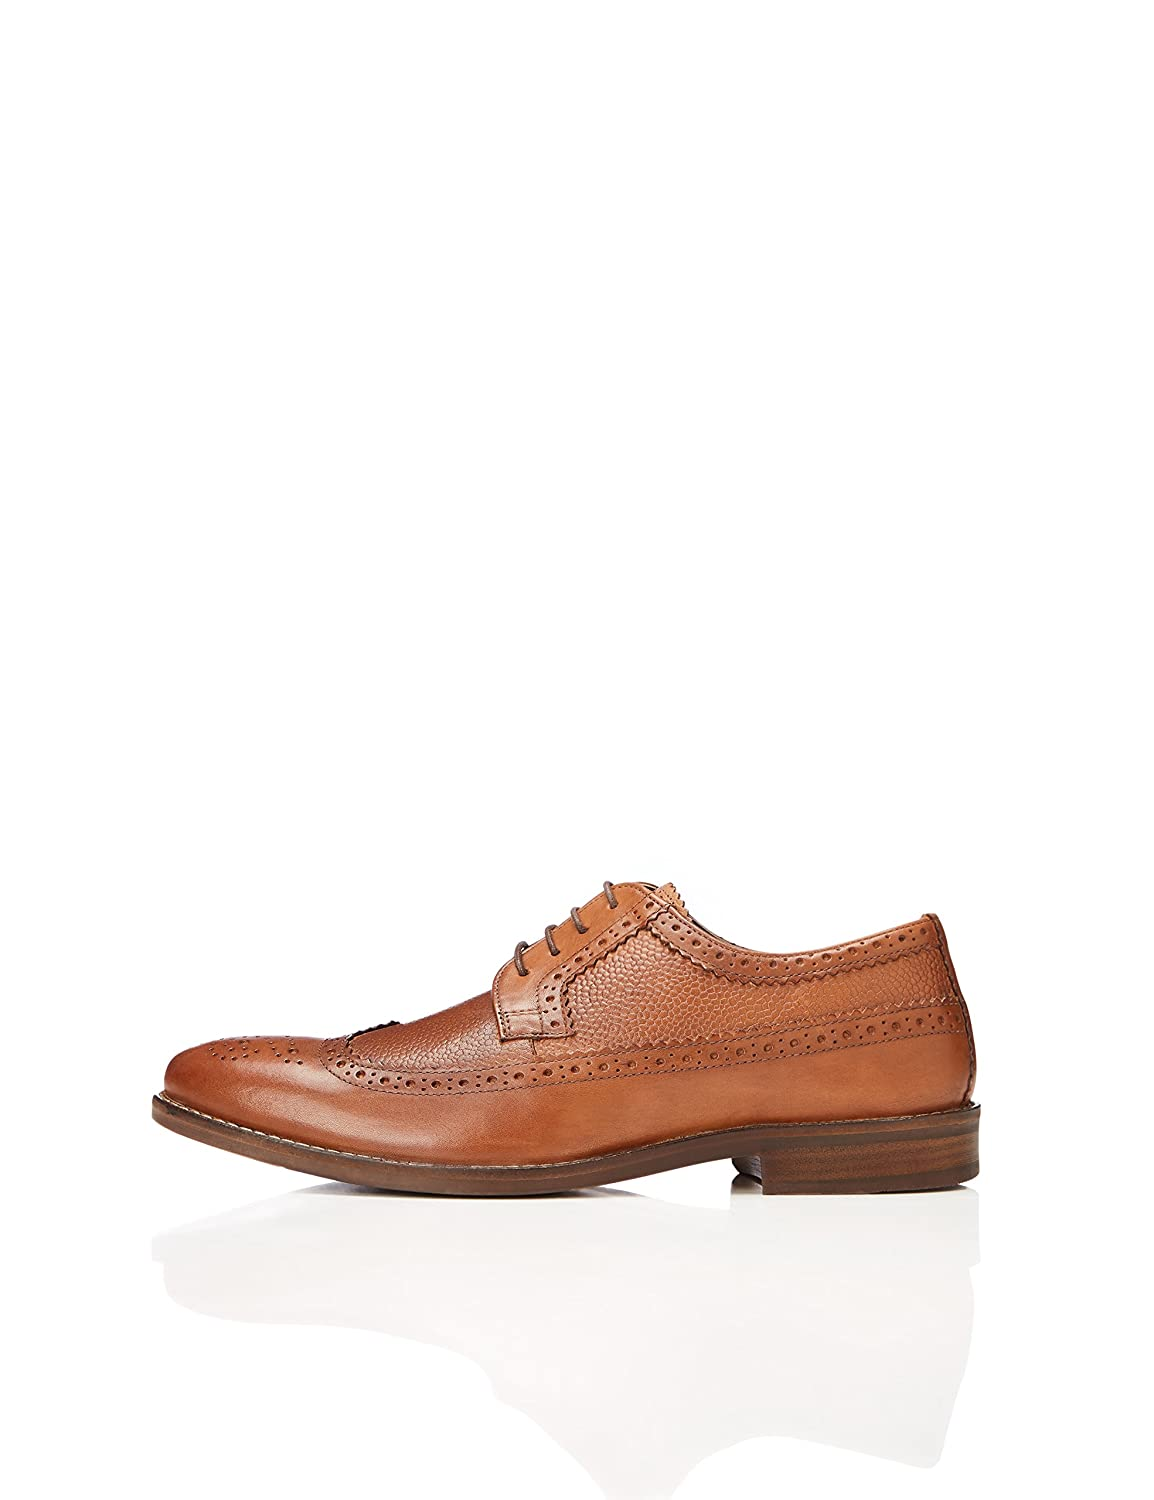 TALLA 42 EU. Marca Amazon - find. Zapatos Brogue Hombre